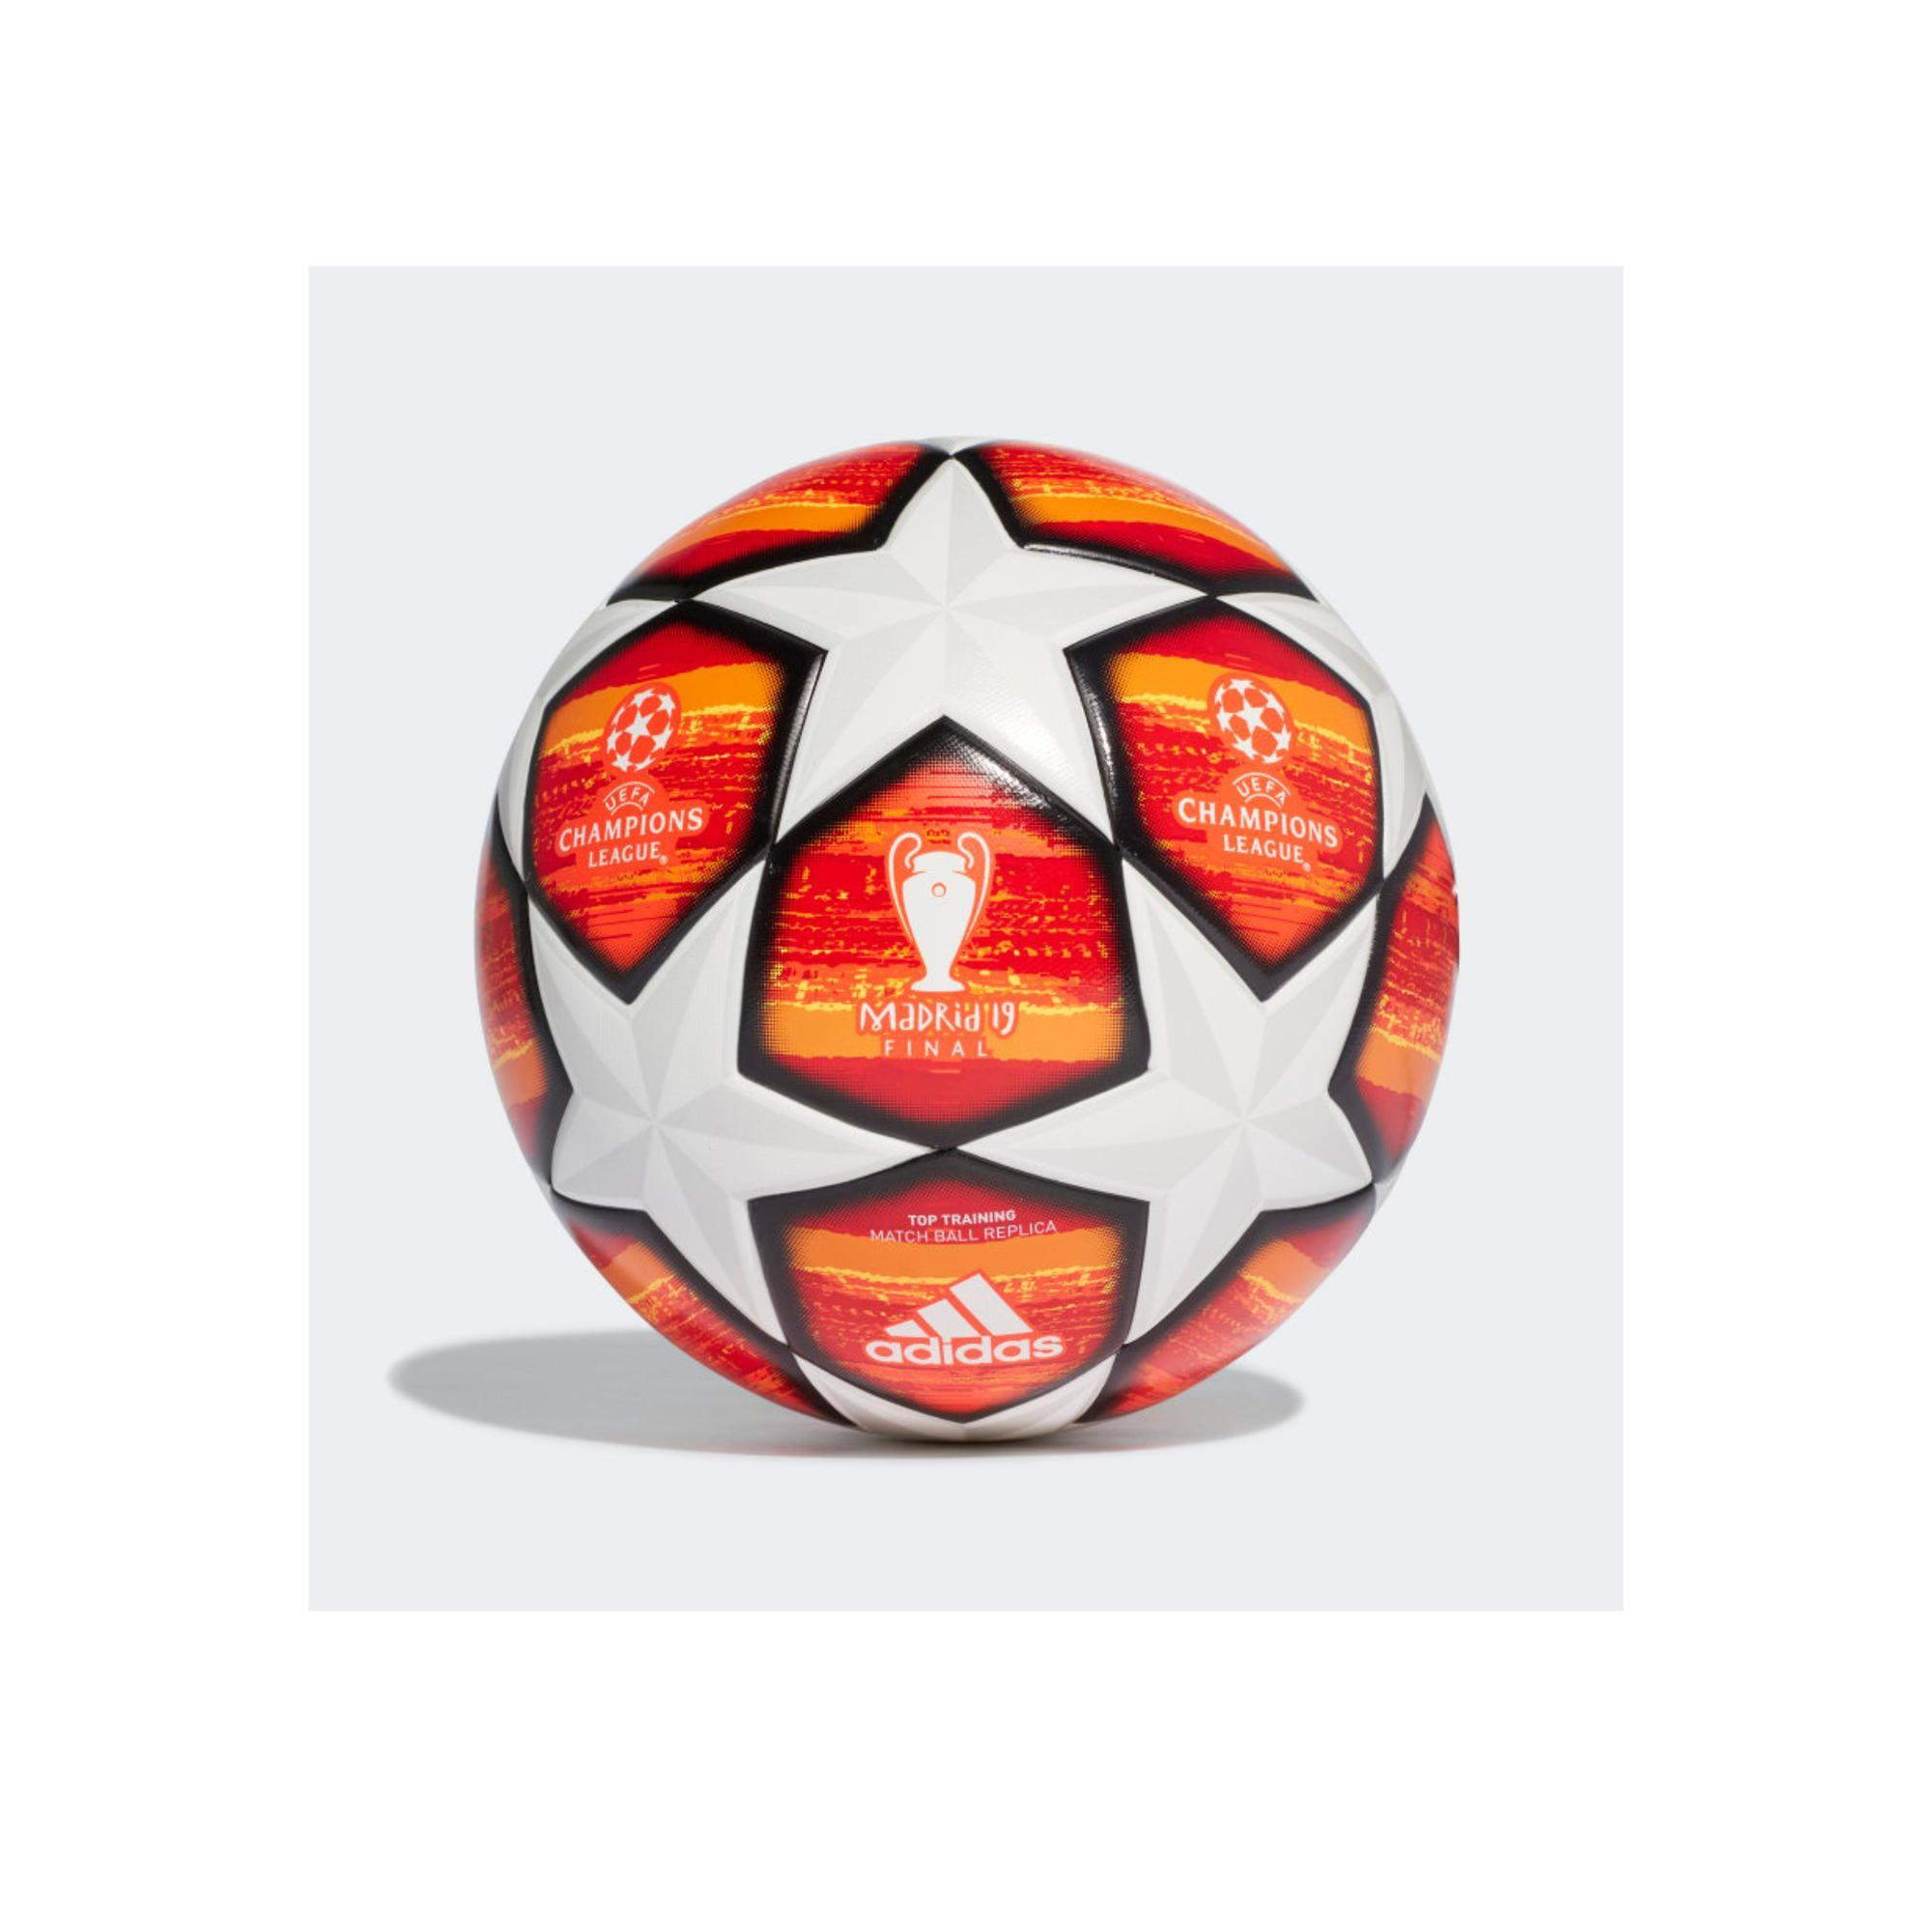 Adidas Champions League bal, Top replique 18/ 19 maat 5 kopen